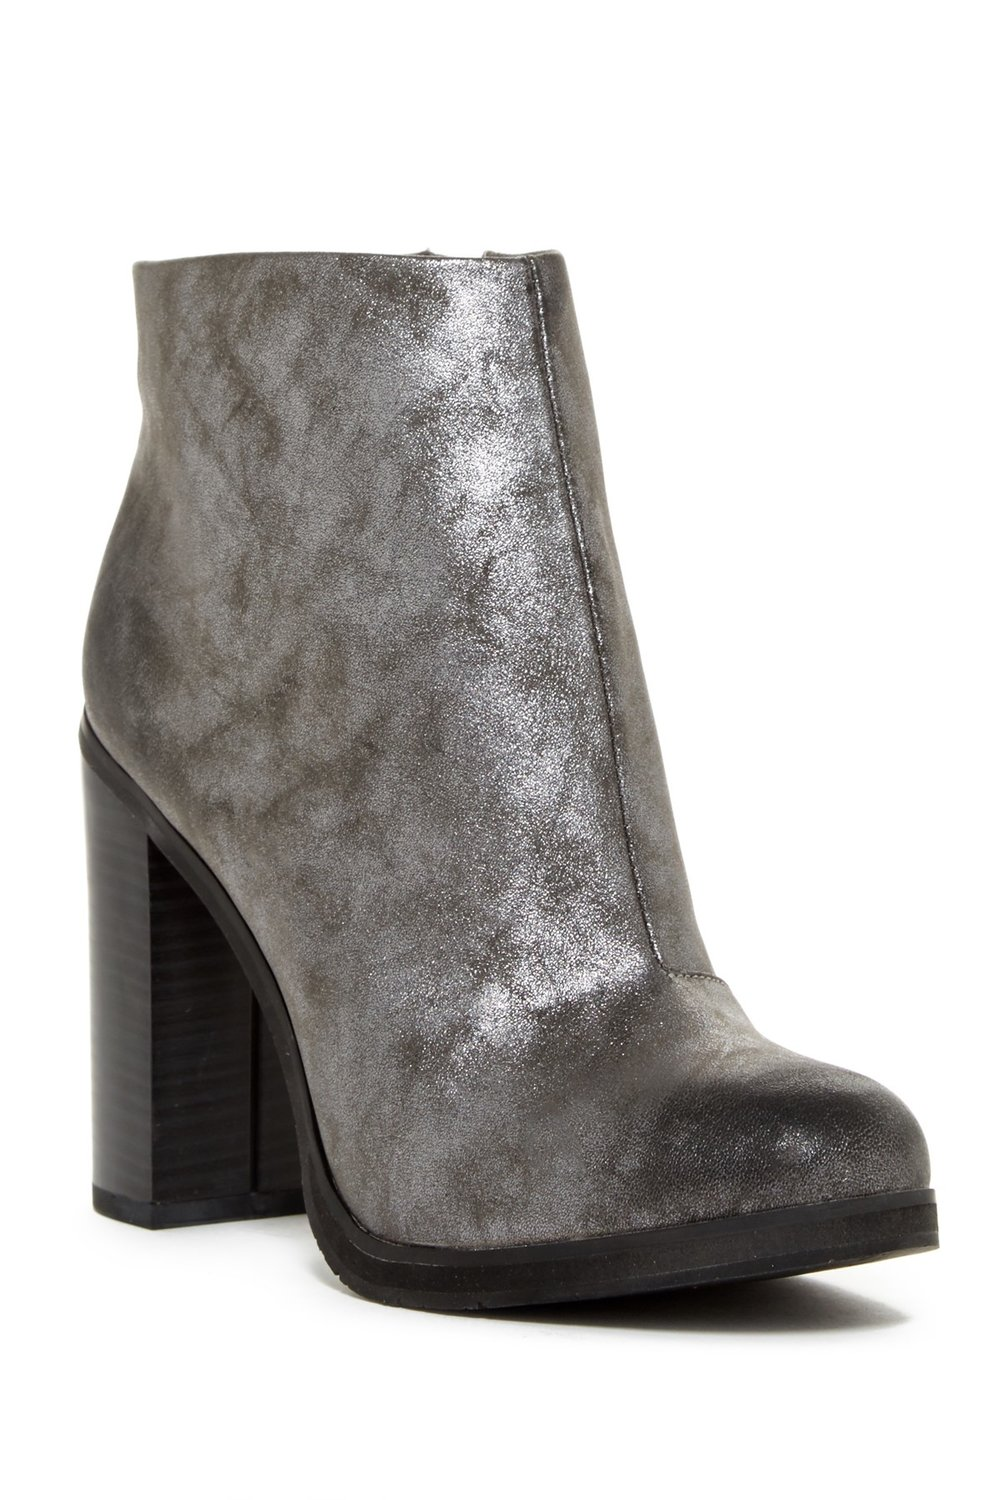 BC Footwear Crowd Chunky Ankle Boot. Nordstrom Rack. Was: $110. Now: $69.